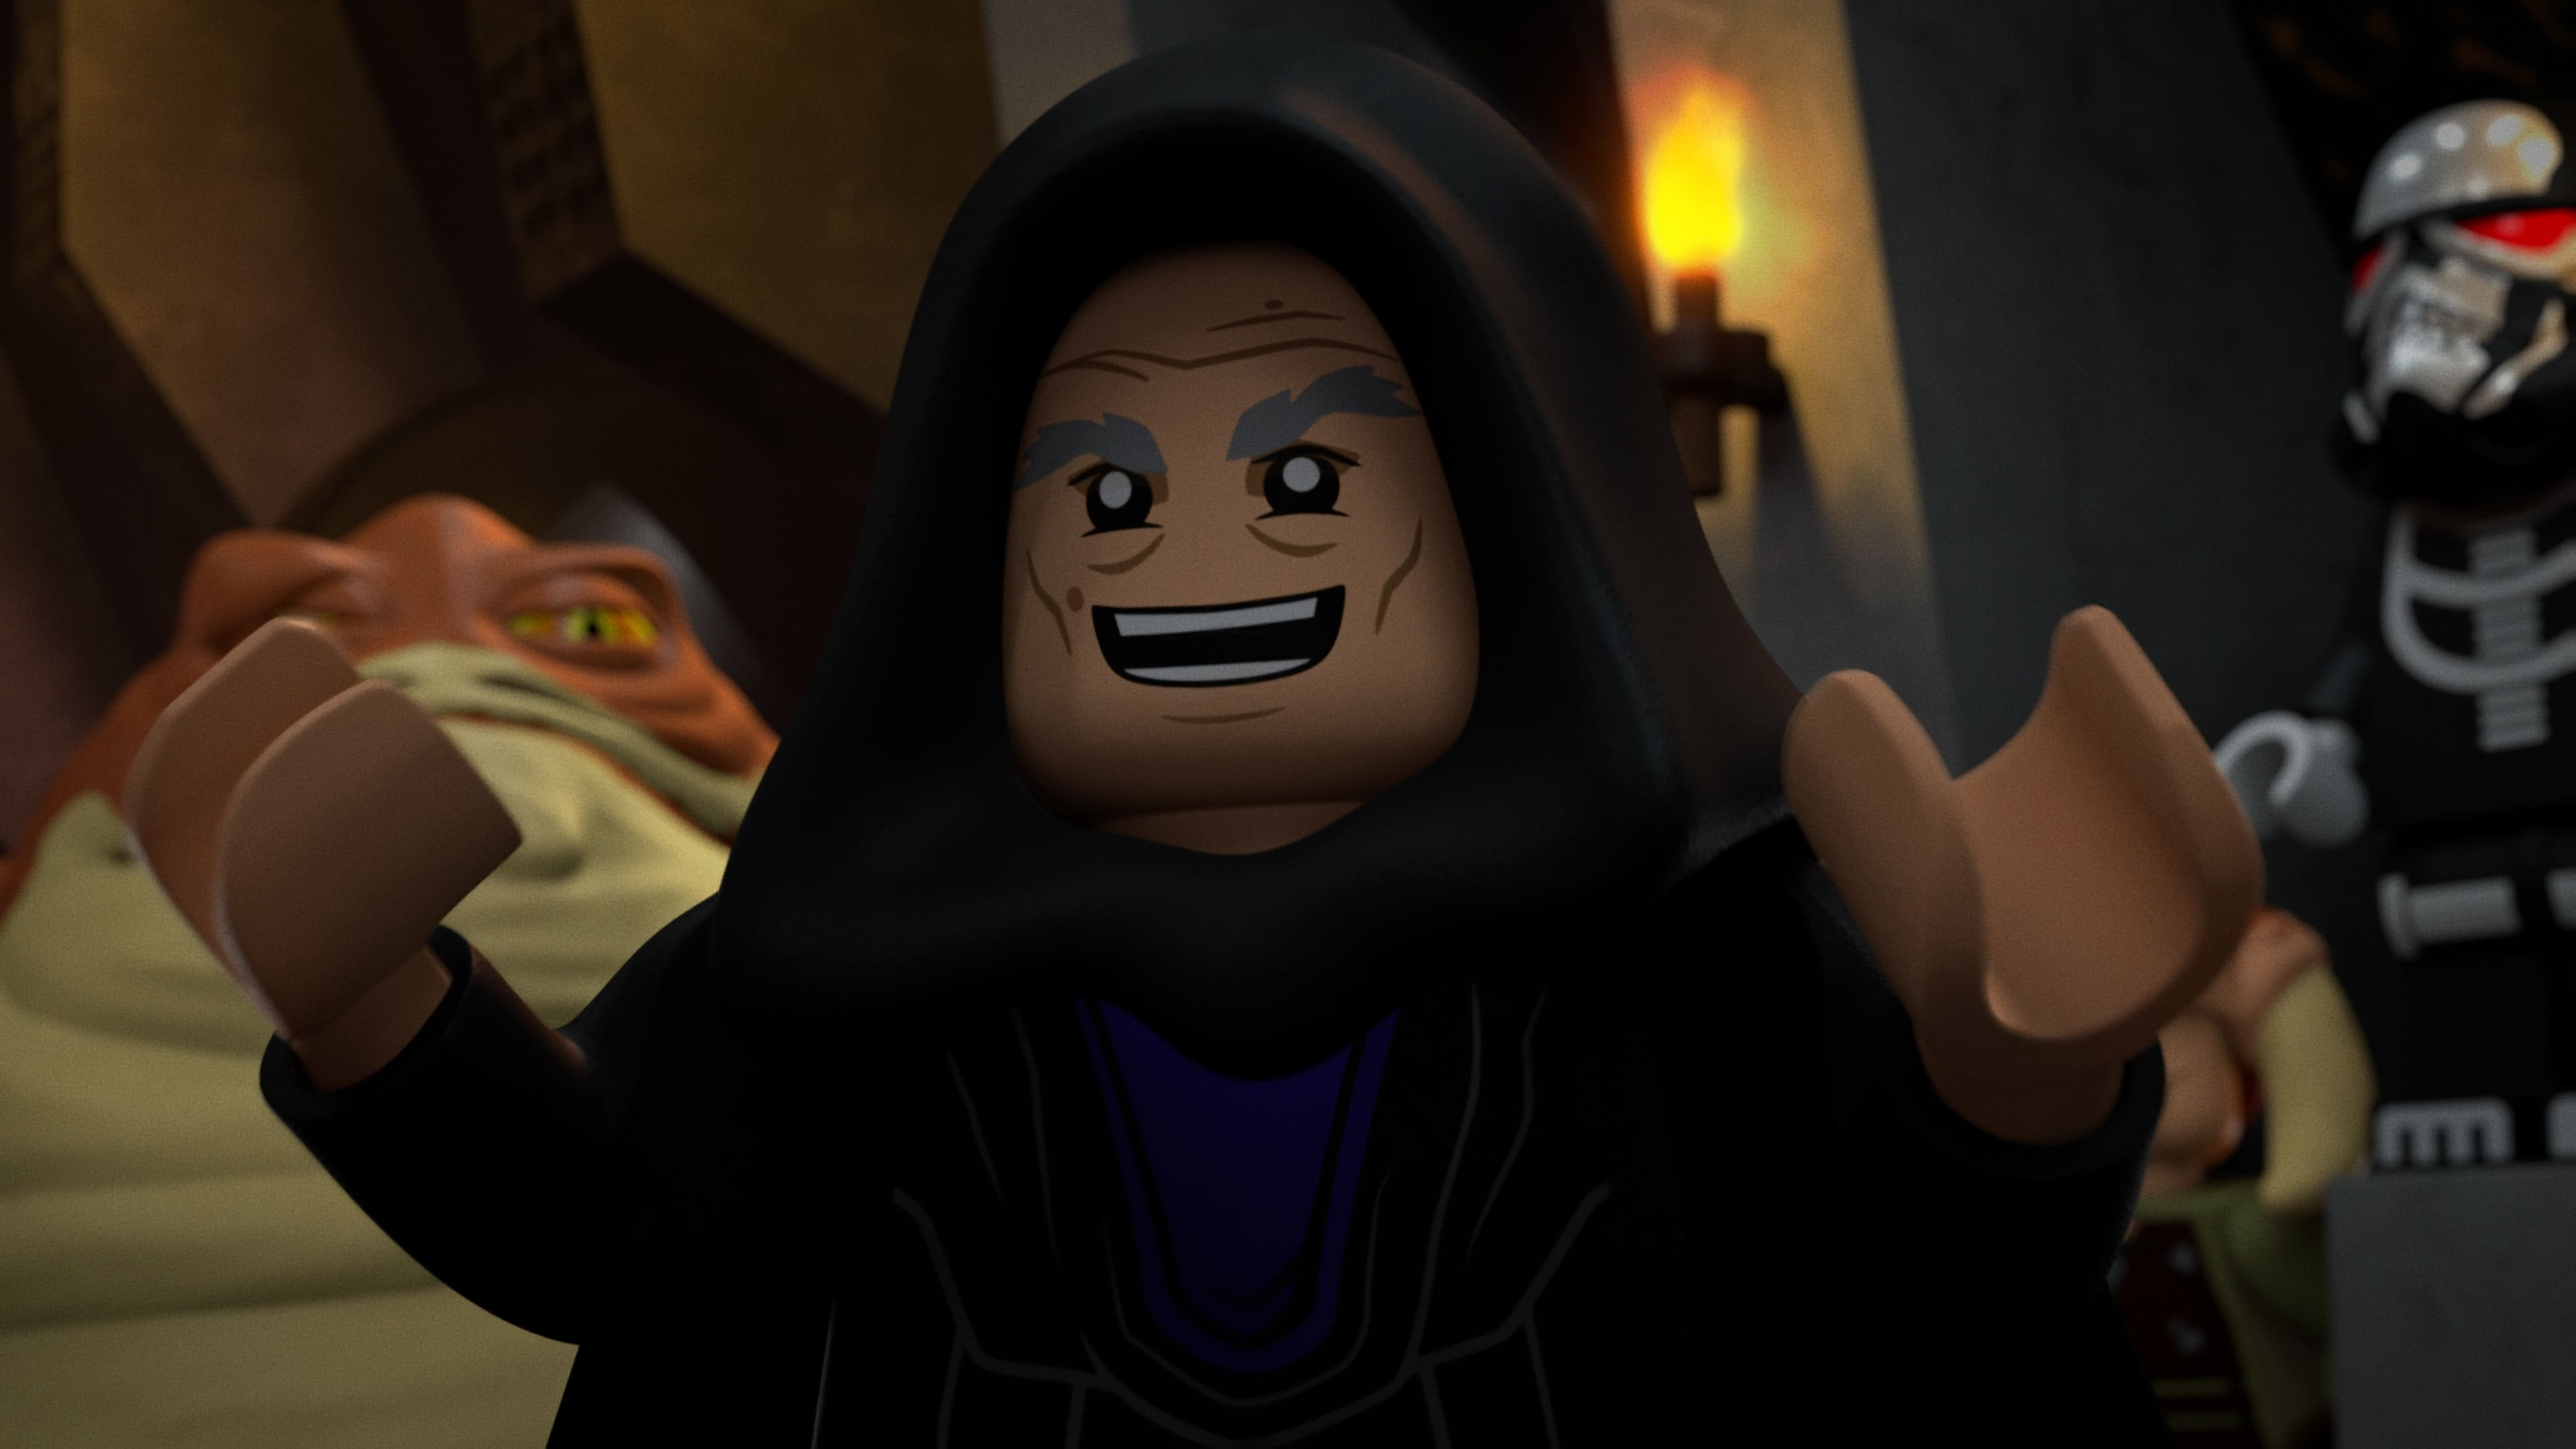 (L-R): Graballa the Hutt and Vaneé in LEGO STAR WARS TERRIFYING TALES exclusively on Disney+. ©2021 Lucasfilm Ltd. & TM. All Rights Reserved.